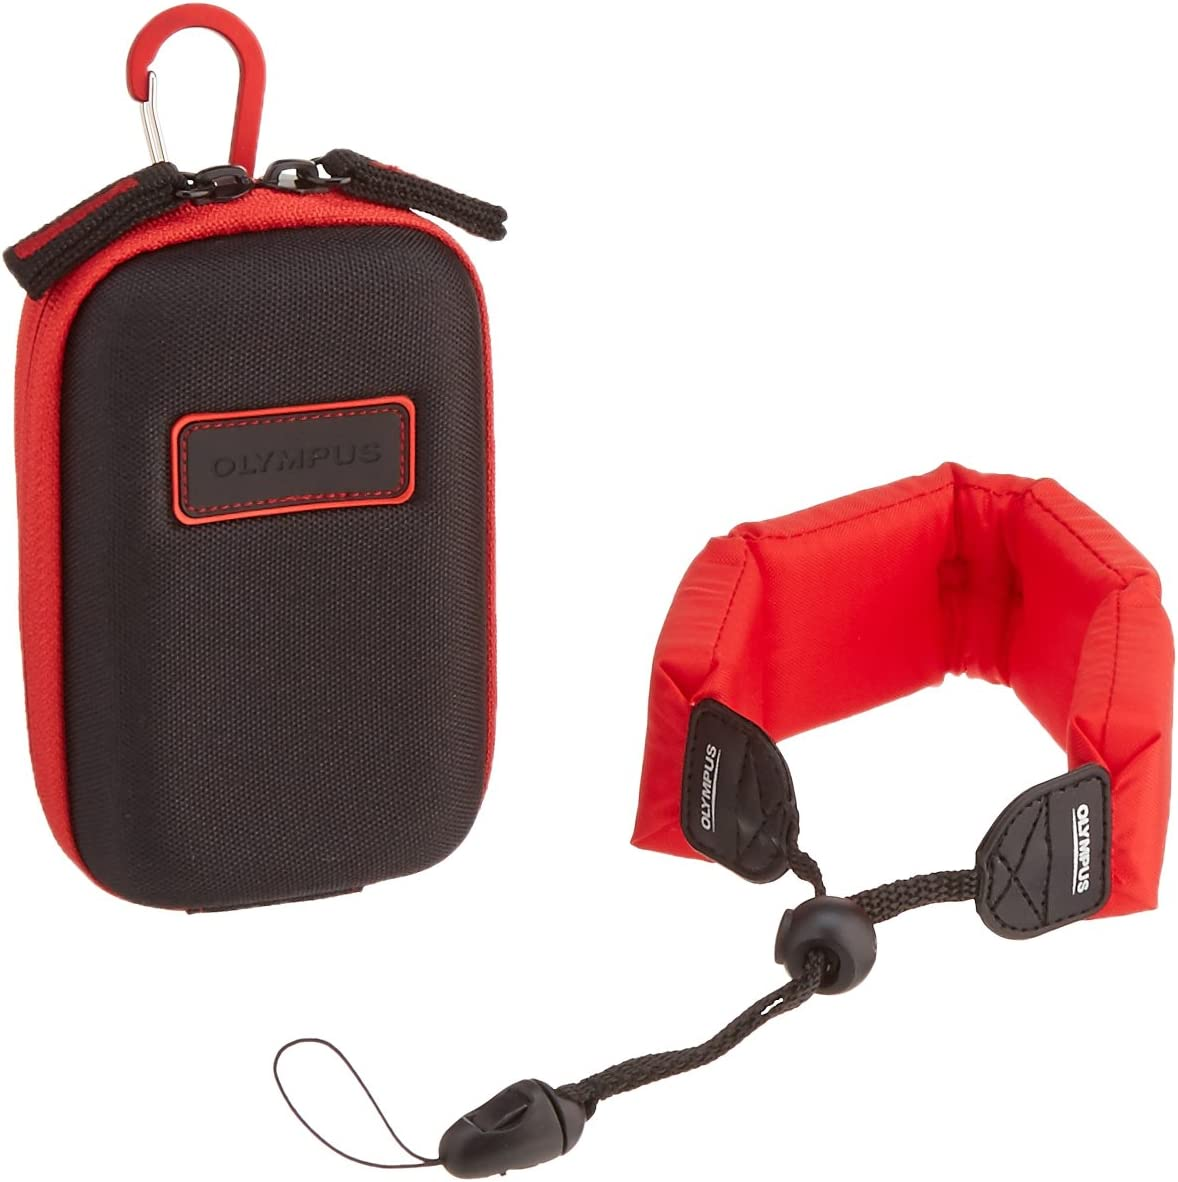 Olympus  Premium Tough Accessory Pack (Black and Red)